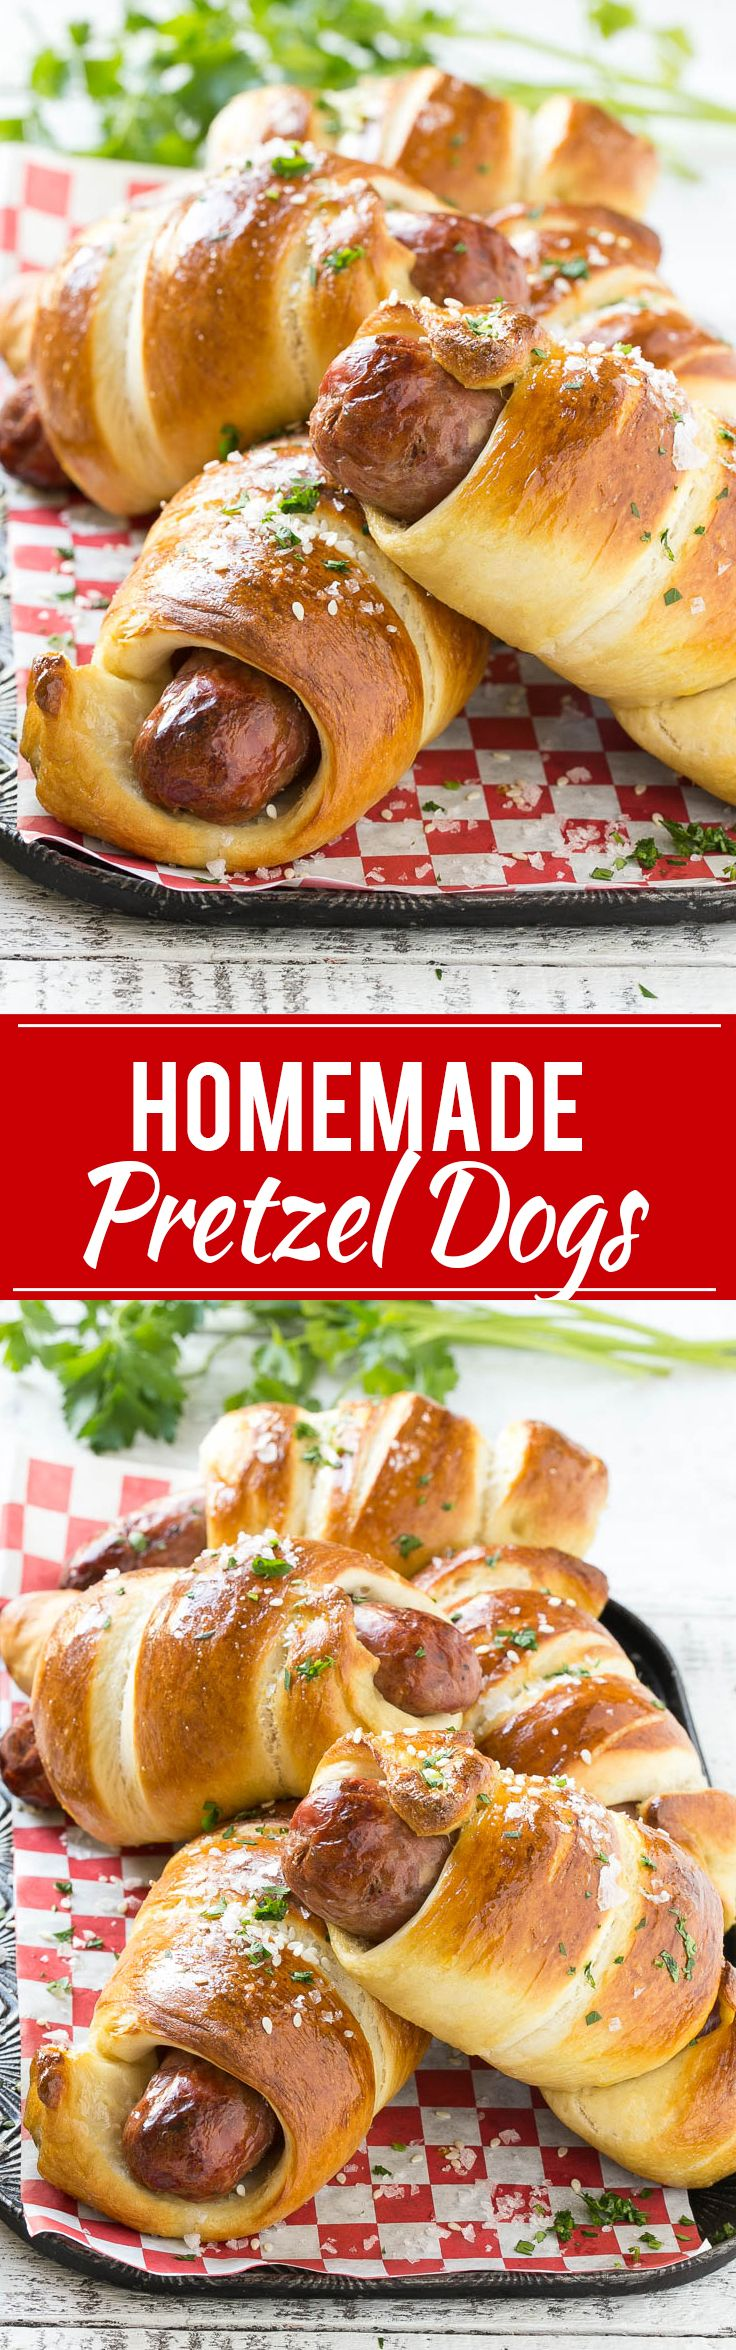 This recipe for pretzel dogs is made with homemade pretzel dough which is wrapped around chicken sausages and baked to golden brown perfection.